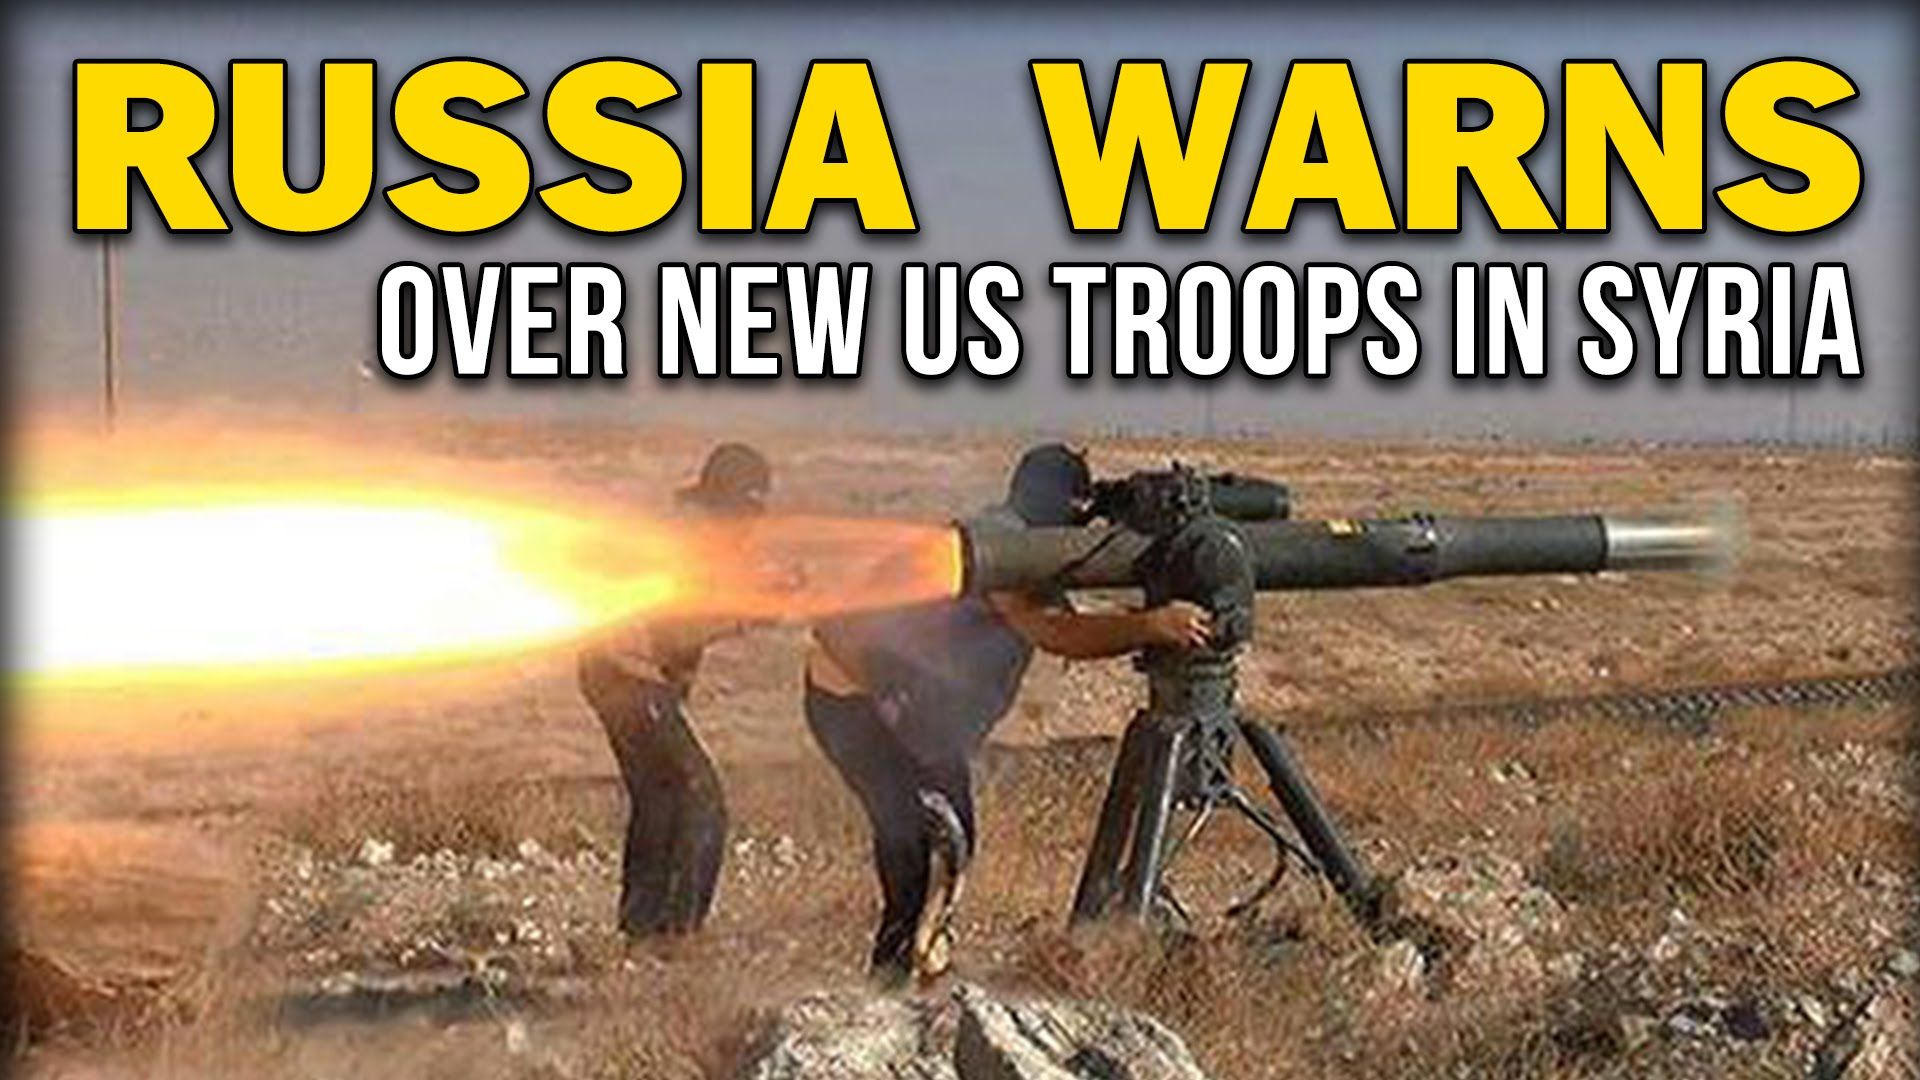 RUSSIA WARNS AGAINST NEW US TROOPS IN SYRIA